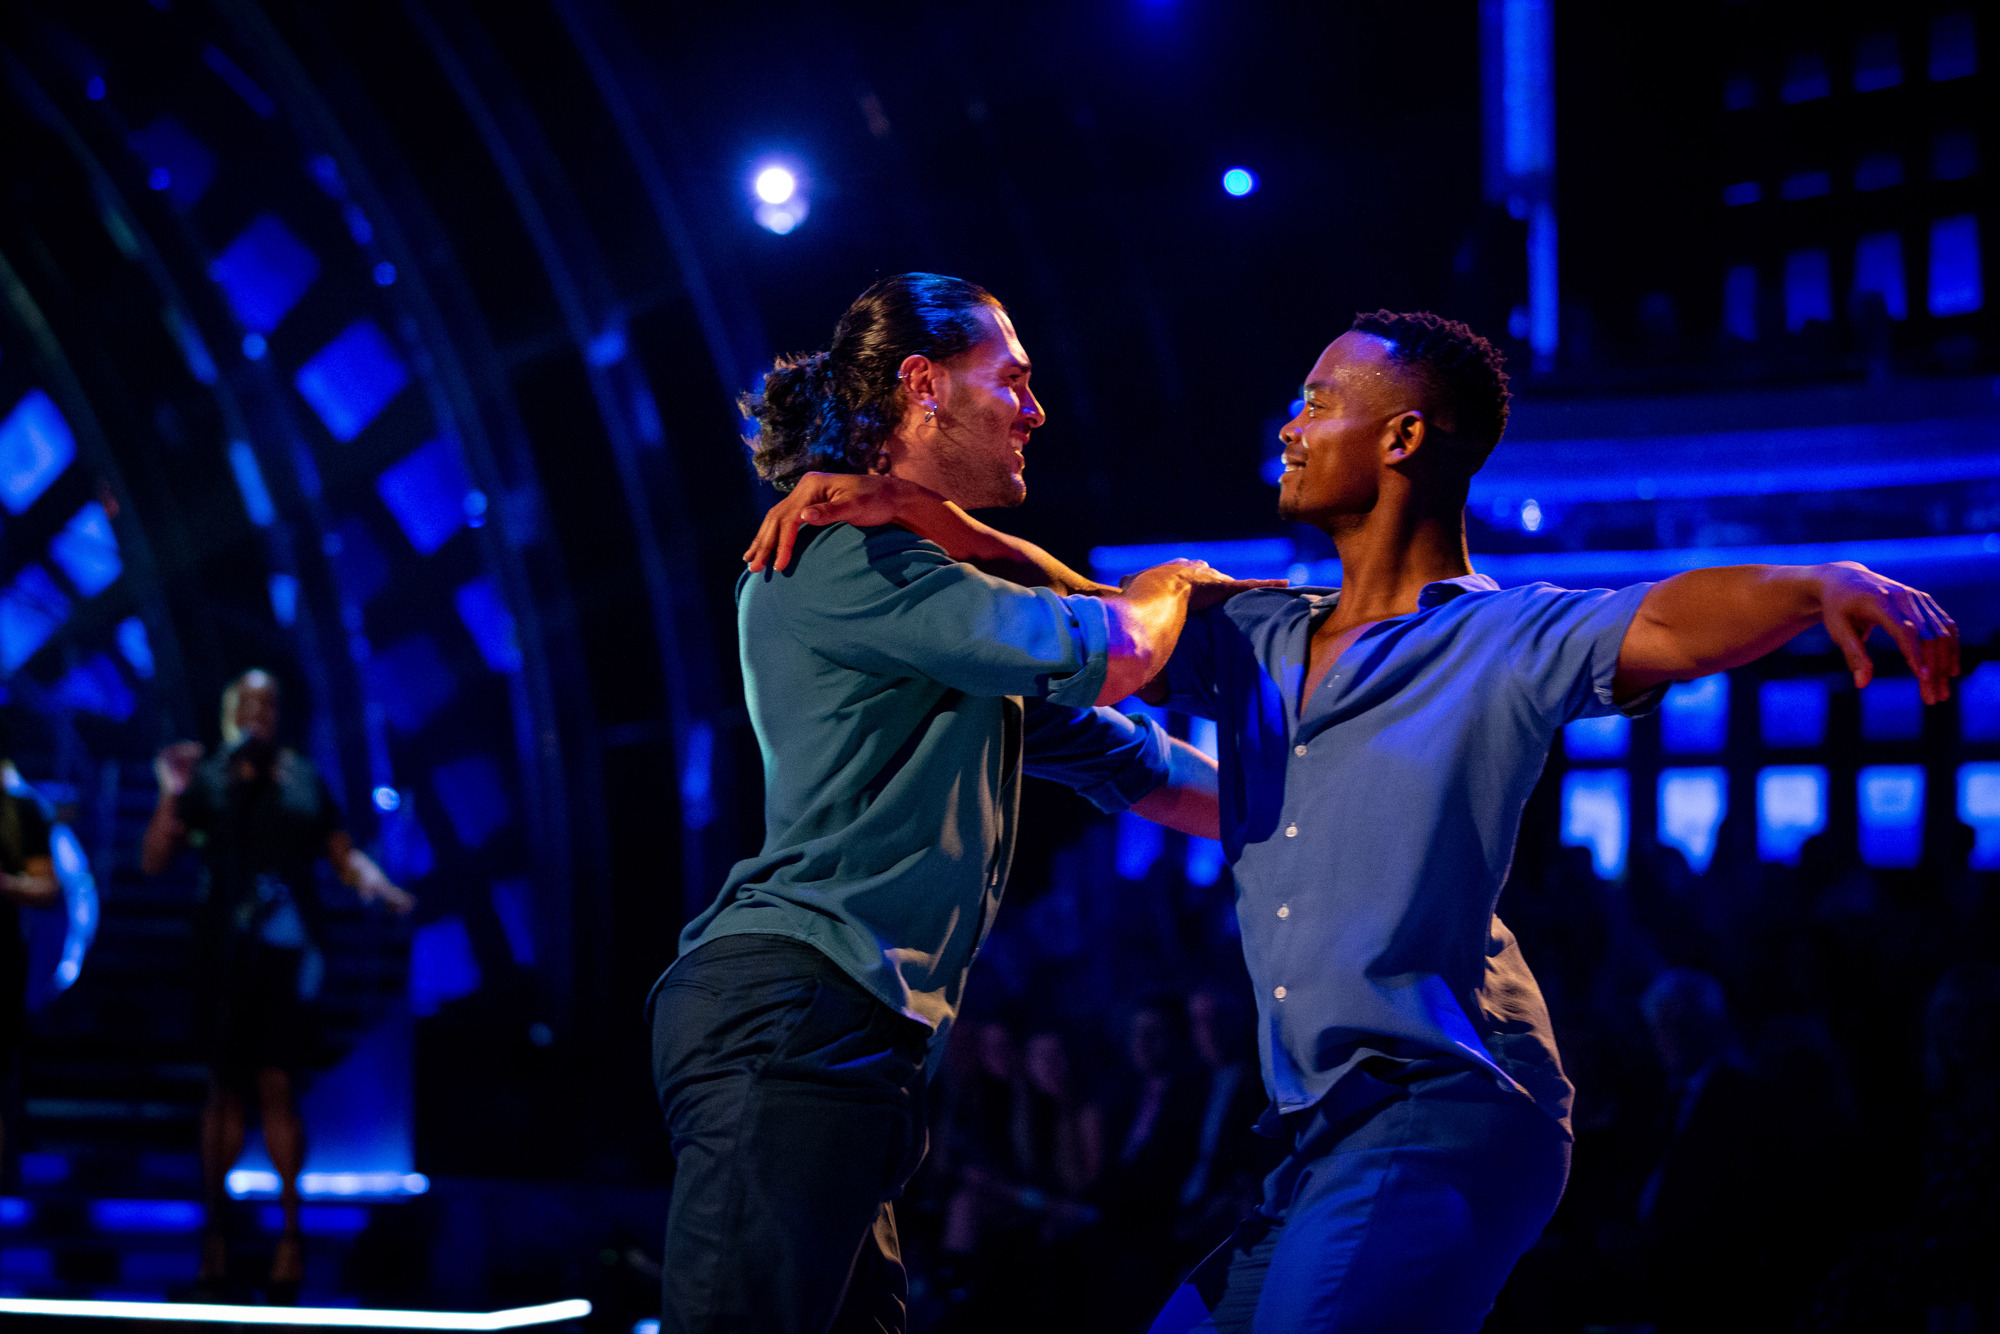 Strictly Come Dancing: Johannes Radebe felt 'liberated' during same-sex dance